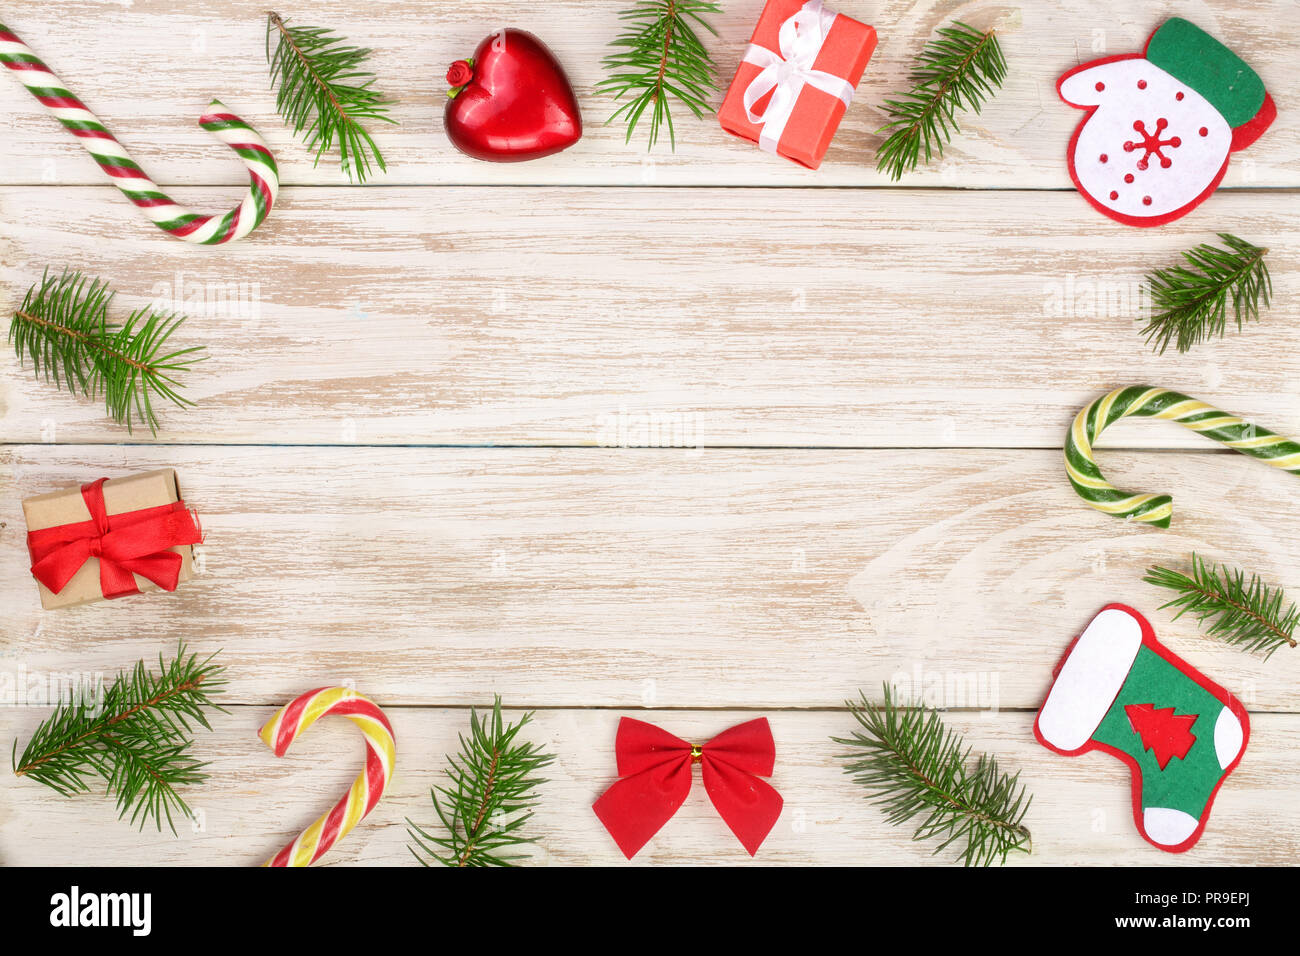 Christmas frame made of fir branches decorated with candy canes and boxes on a light wooden background Stock Photo